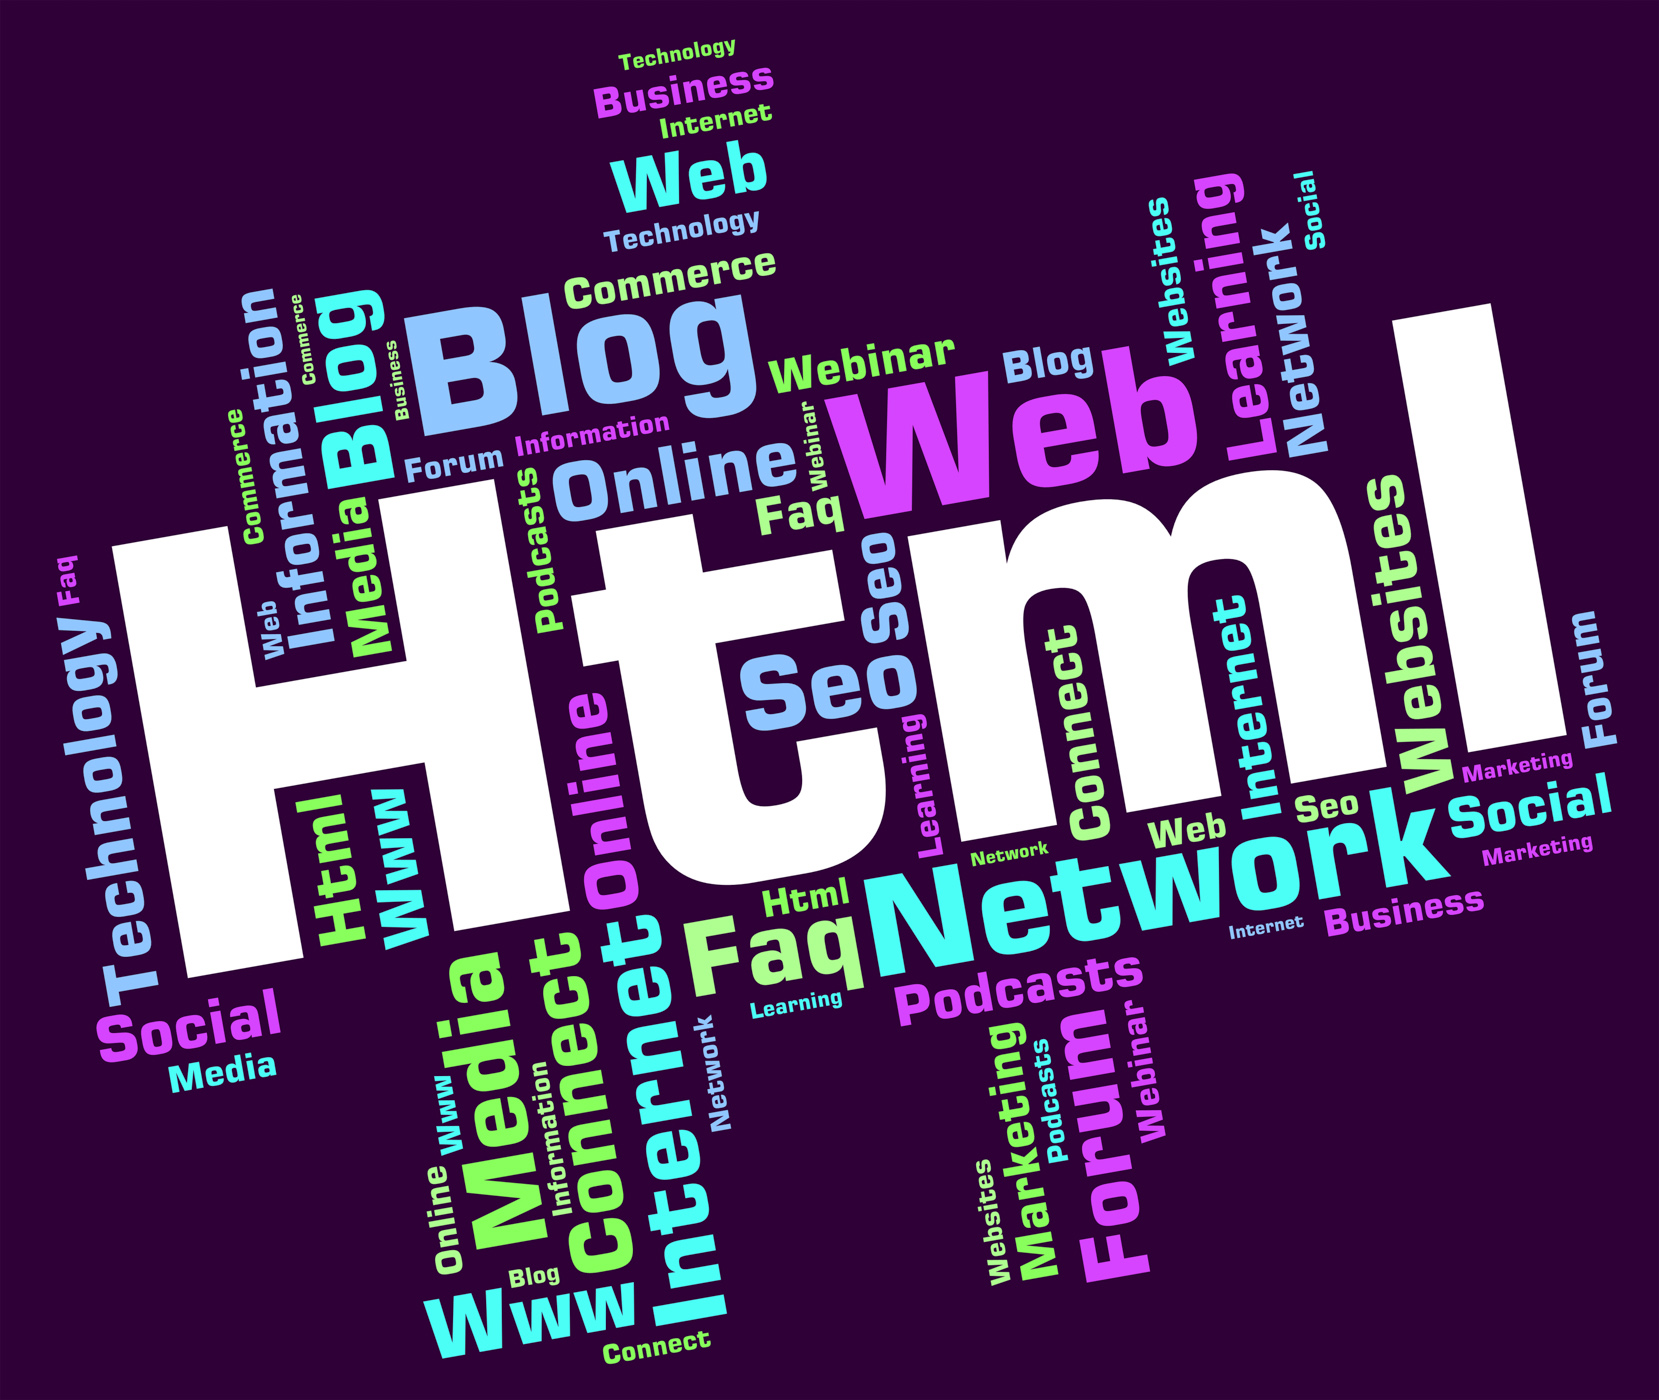 Html word indicates hypertext markup language and web photo